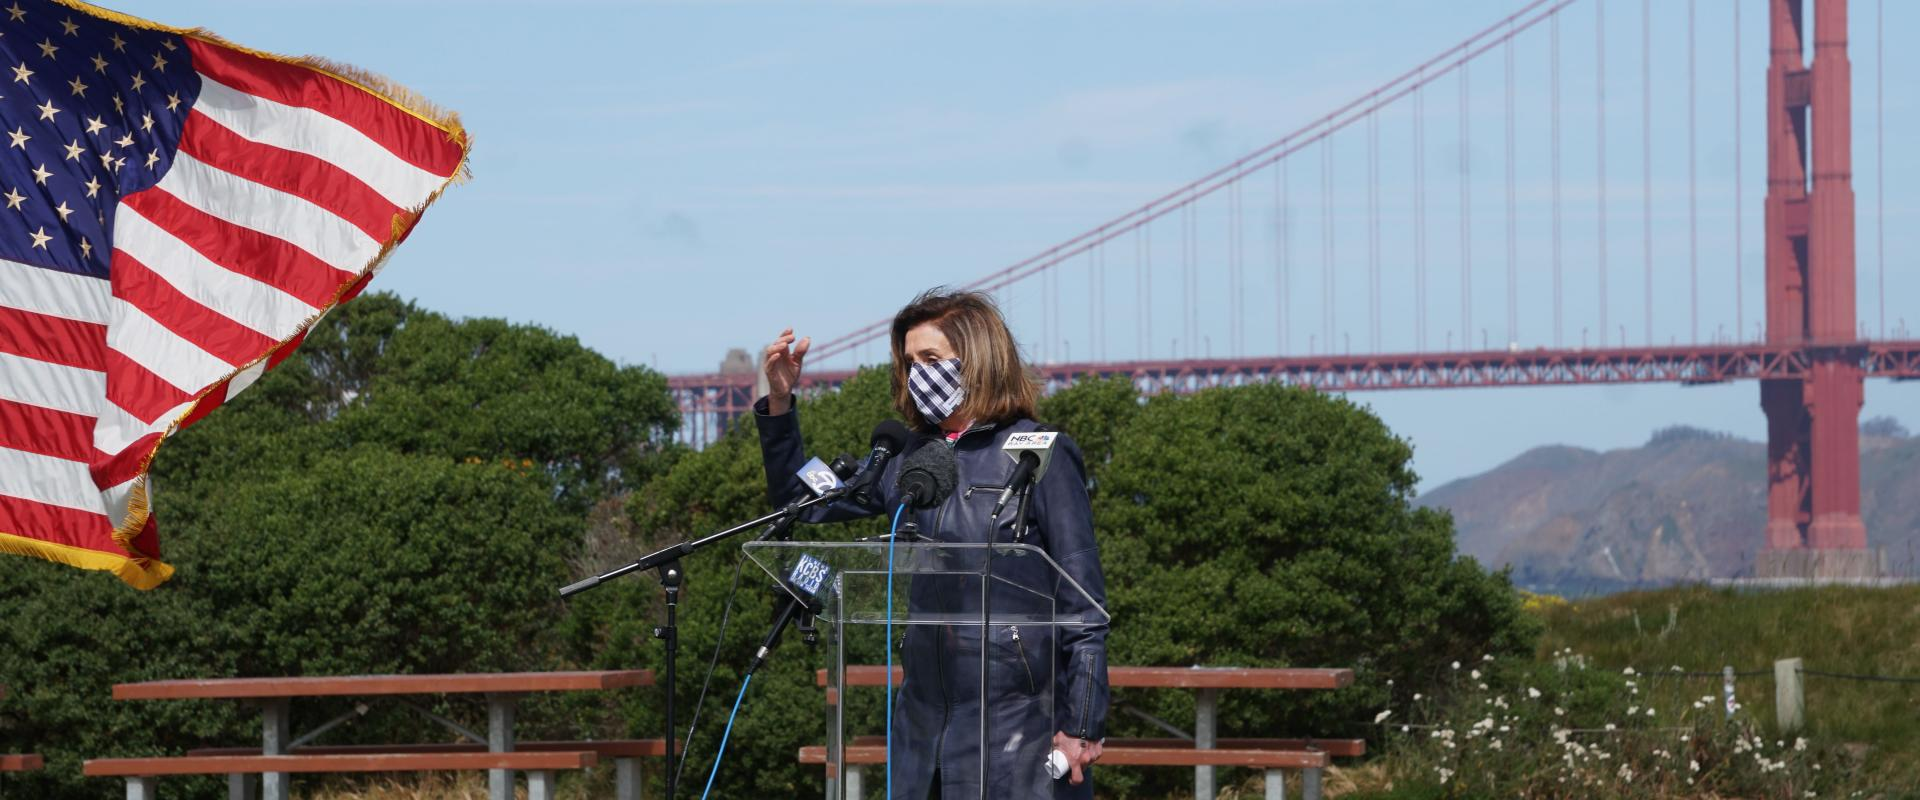 Congresswoman Nancy Pelosi speaks at the 20th Anniversary celebration of the revitalization of Crissy Field in the Presidio. The restoration of Crissy Field stands as a testament to this powerful partnership among governments, philanthropists including th